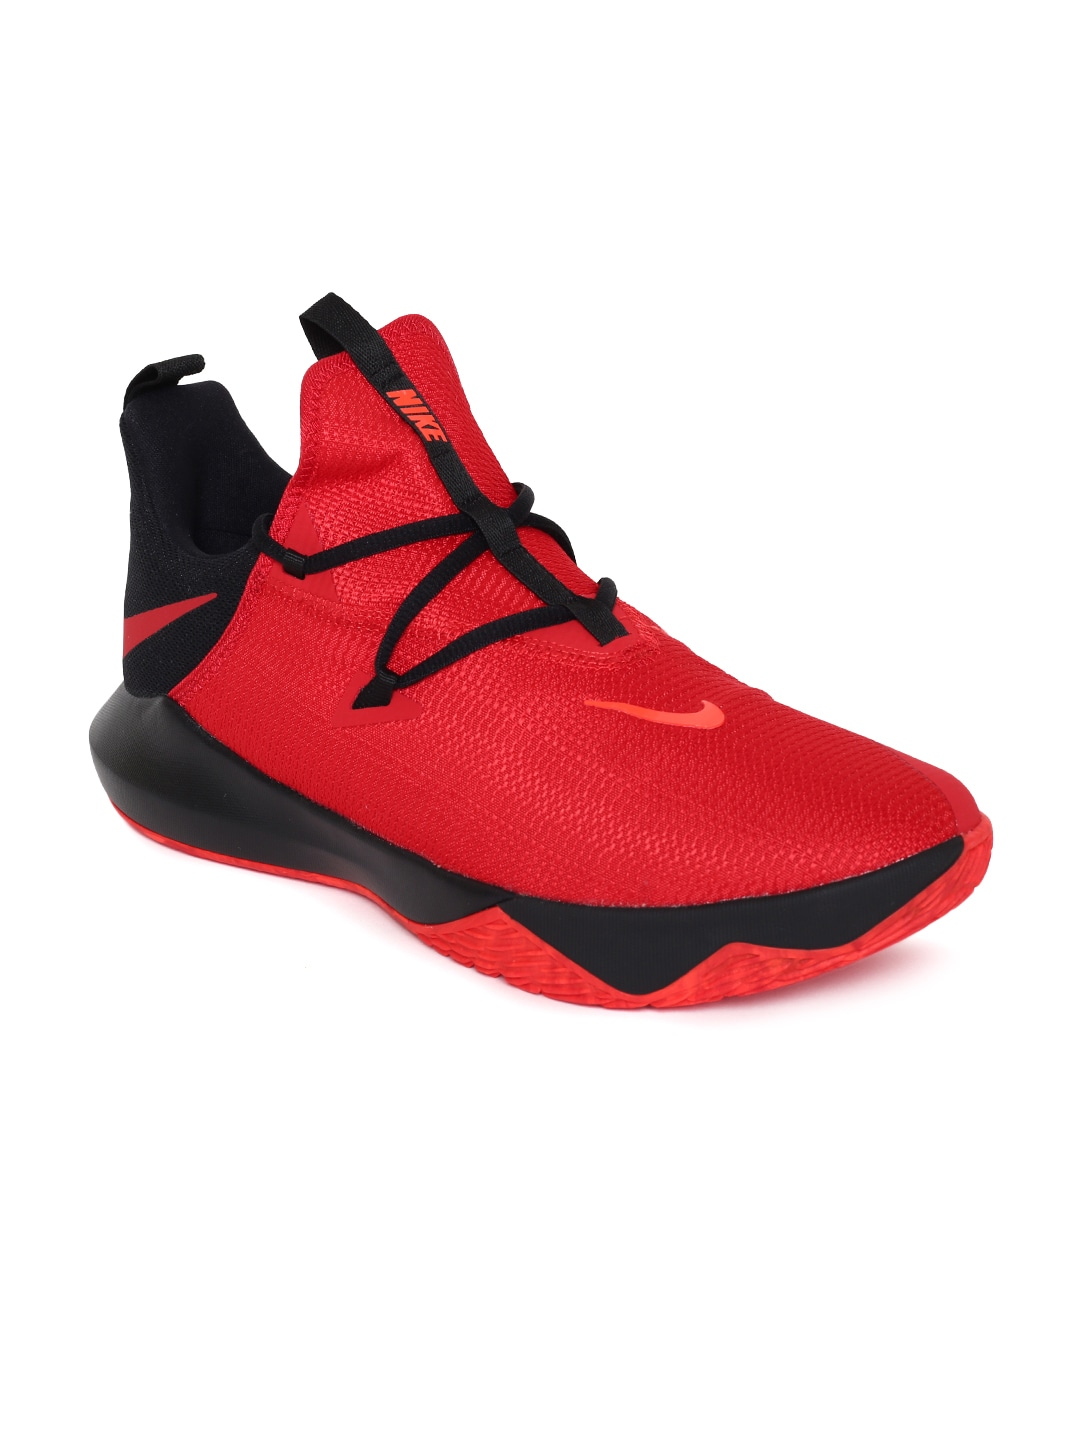 84051e04013 Nike Men Red Solid ZOOM SHIFT 2 Basketball Shoes